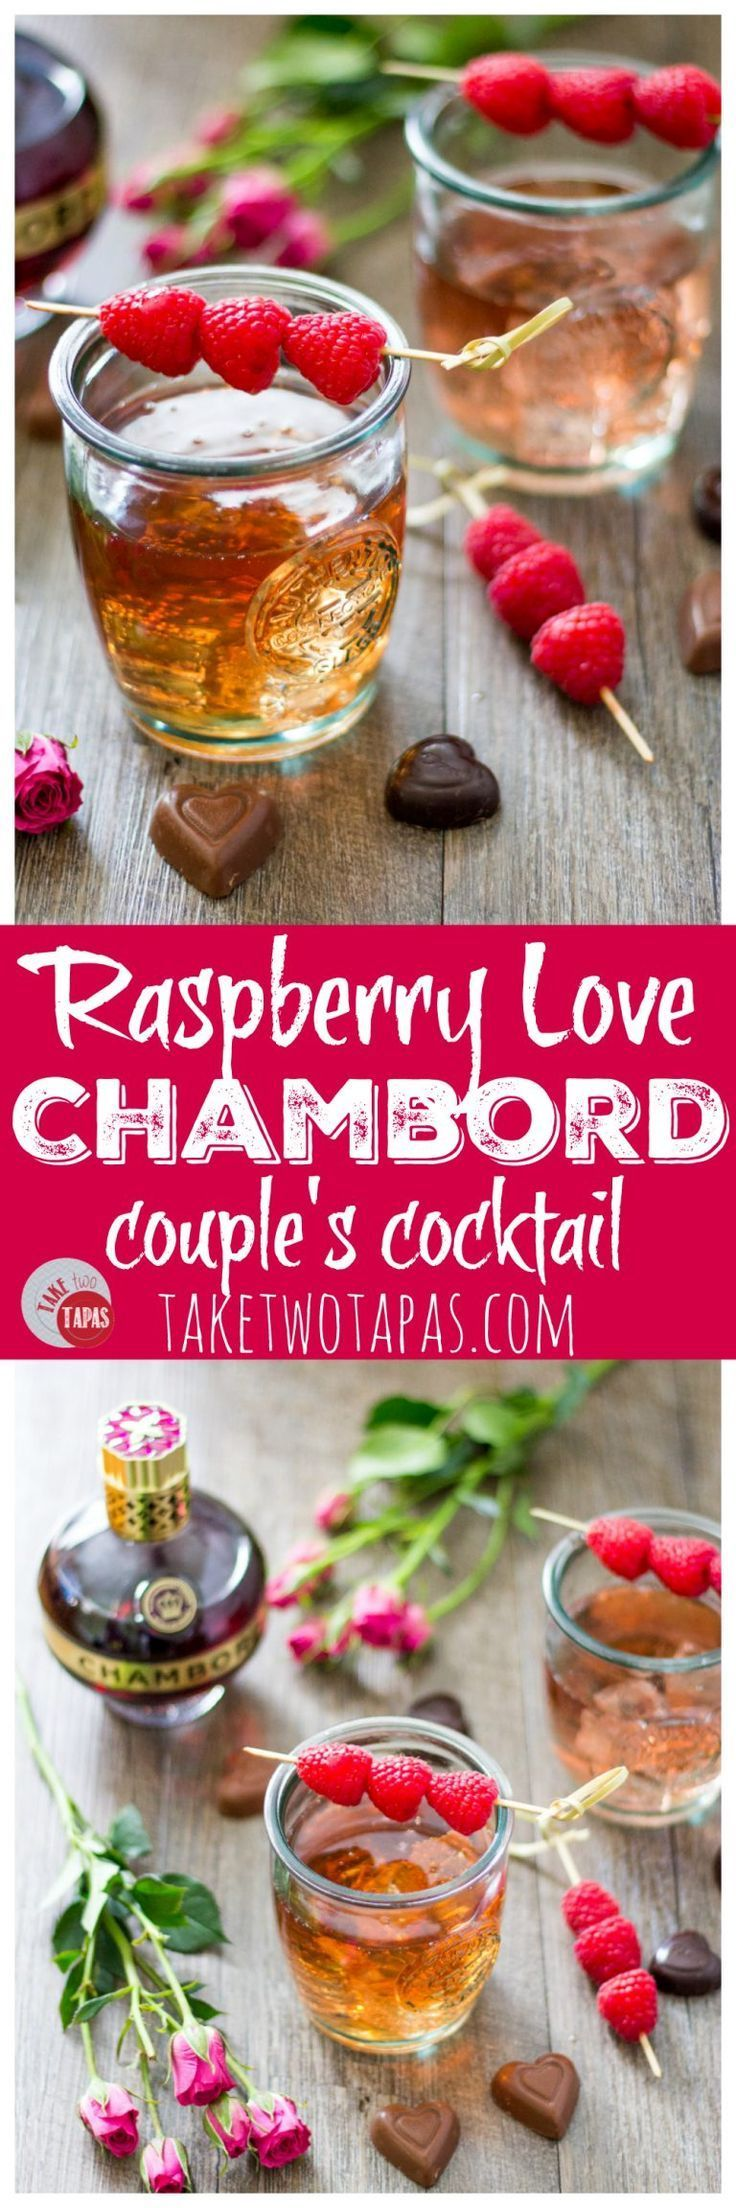 Chambord Raspberry liqueur mixed with bourbon and lemon-lime soda is the perfect way to celebrate with your date! Couples that drink together, stay together. Raspberry Love Cocktail | Take Two Tapas